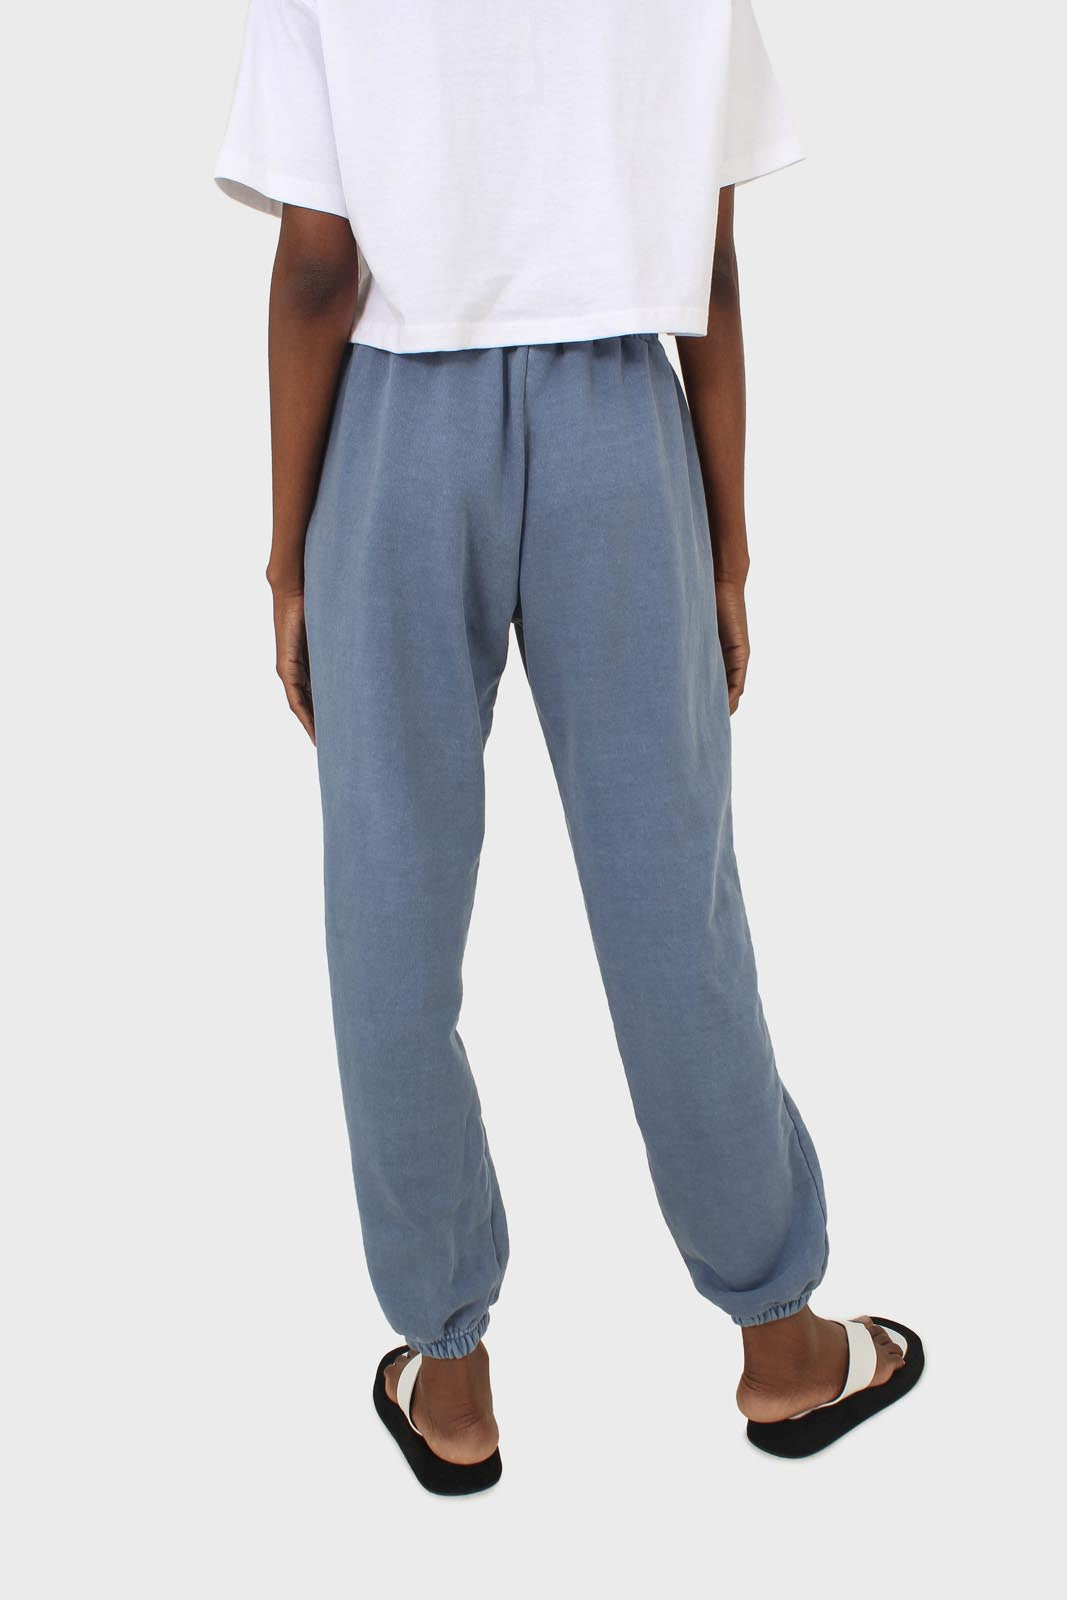 Dusty blue pigment sweatpants11